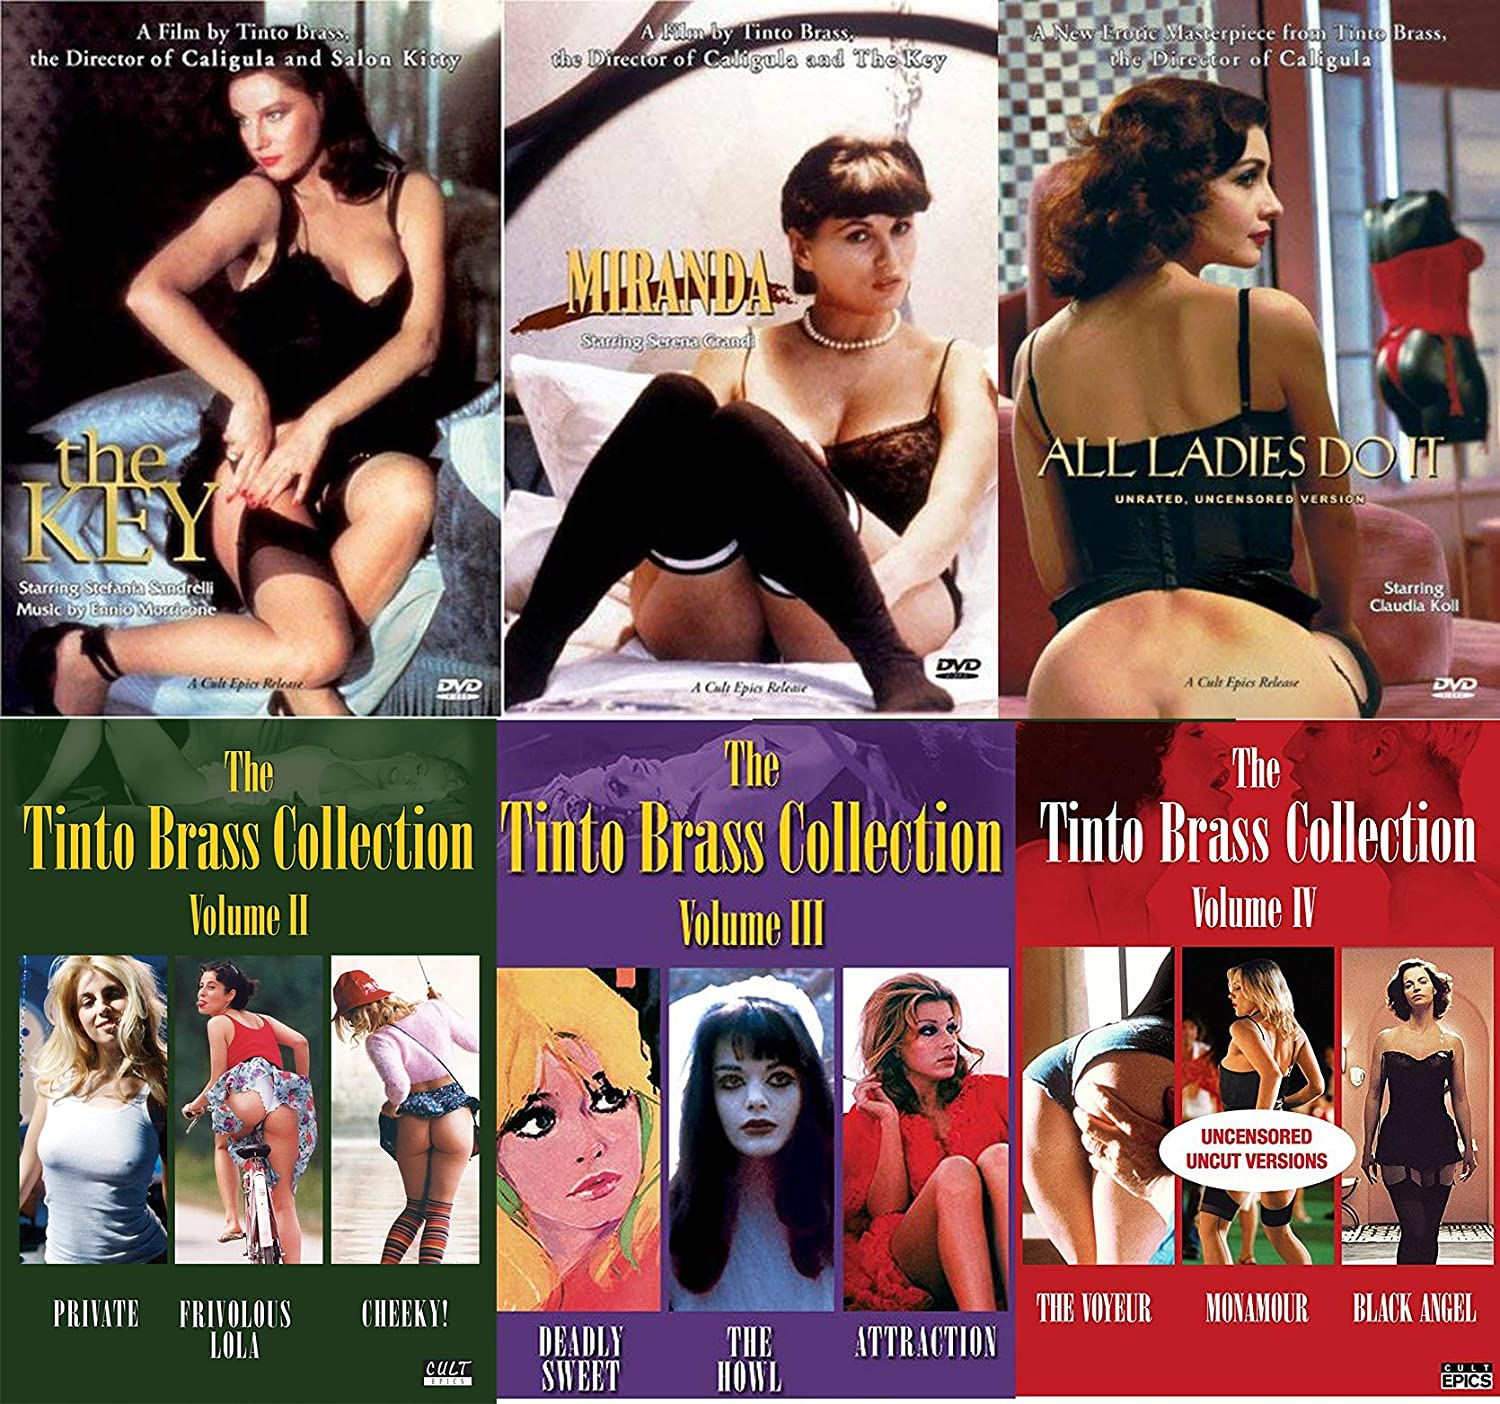 Tinto Brass Collection 12 Dvd Bundle All Ladies Do It Miranda The Key Cheeky Monamour Private Black Angel Cheeky Frivolous Lola Deadly Sweet